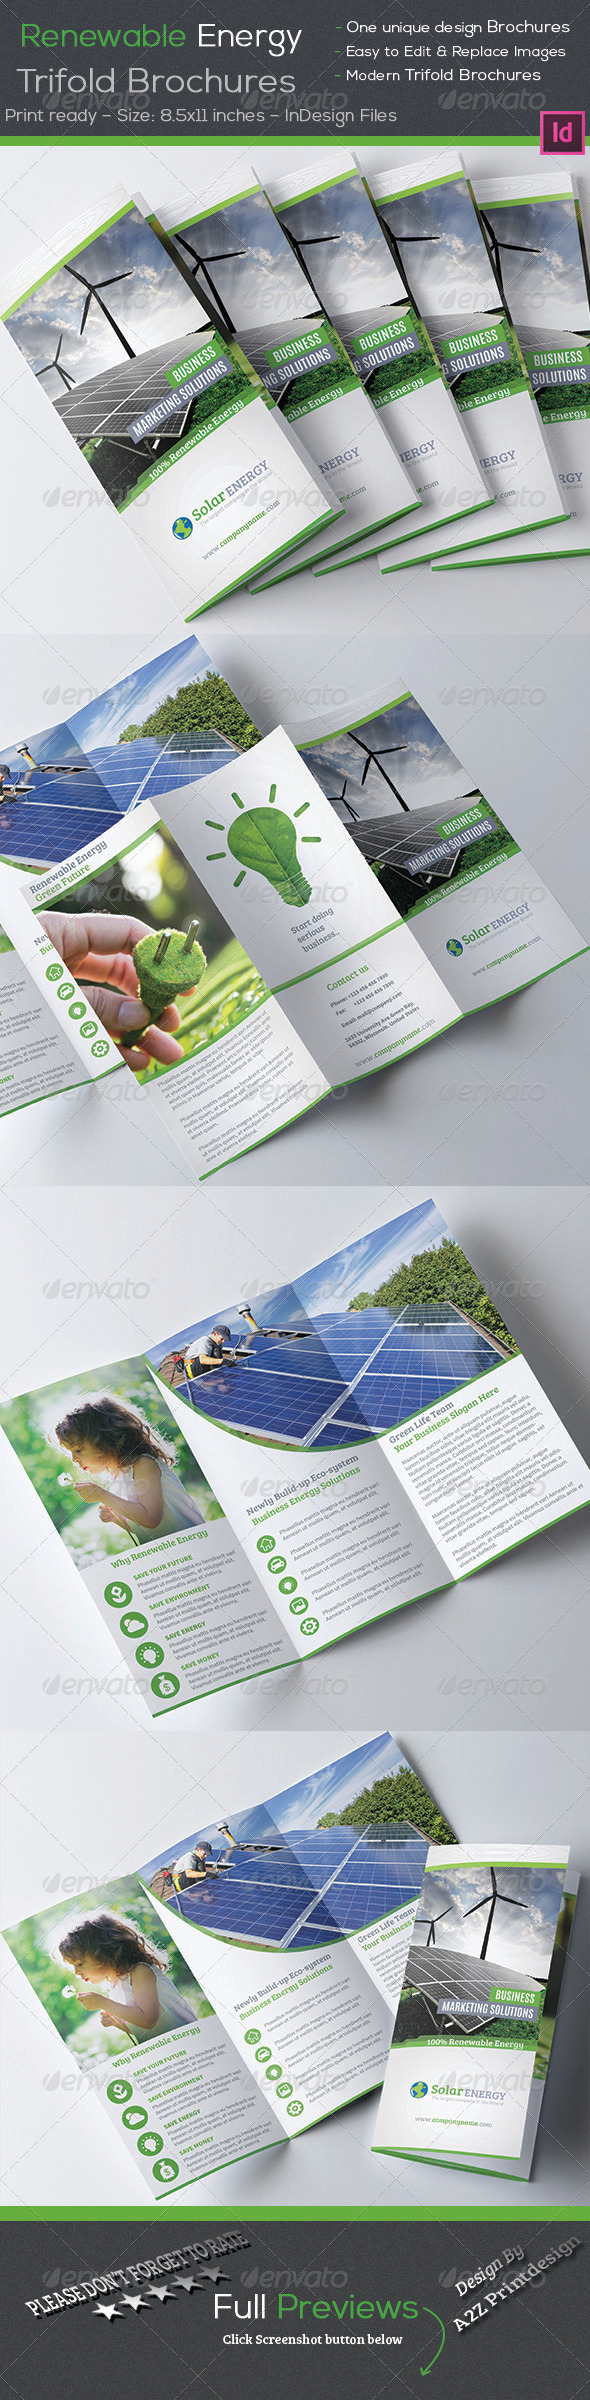 GraphicRiver Renewable Energy Trifold Brochures 8005717